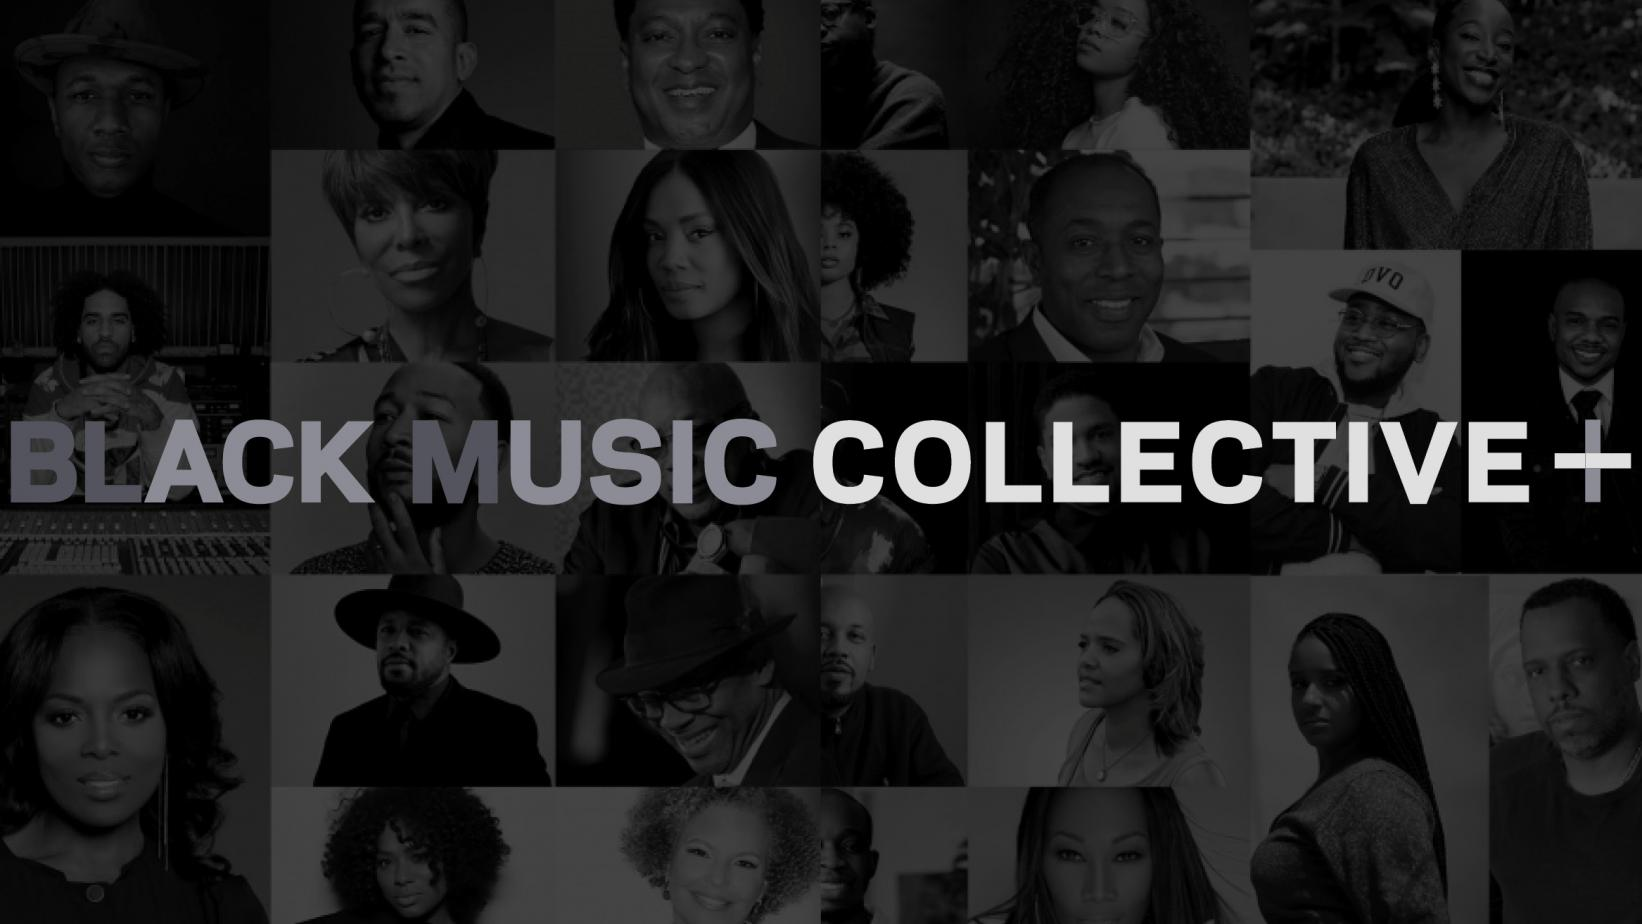 Recording Academy - Black Music Collective